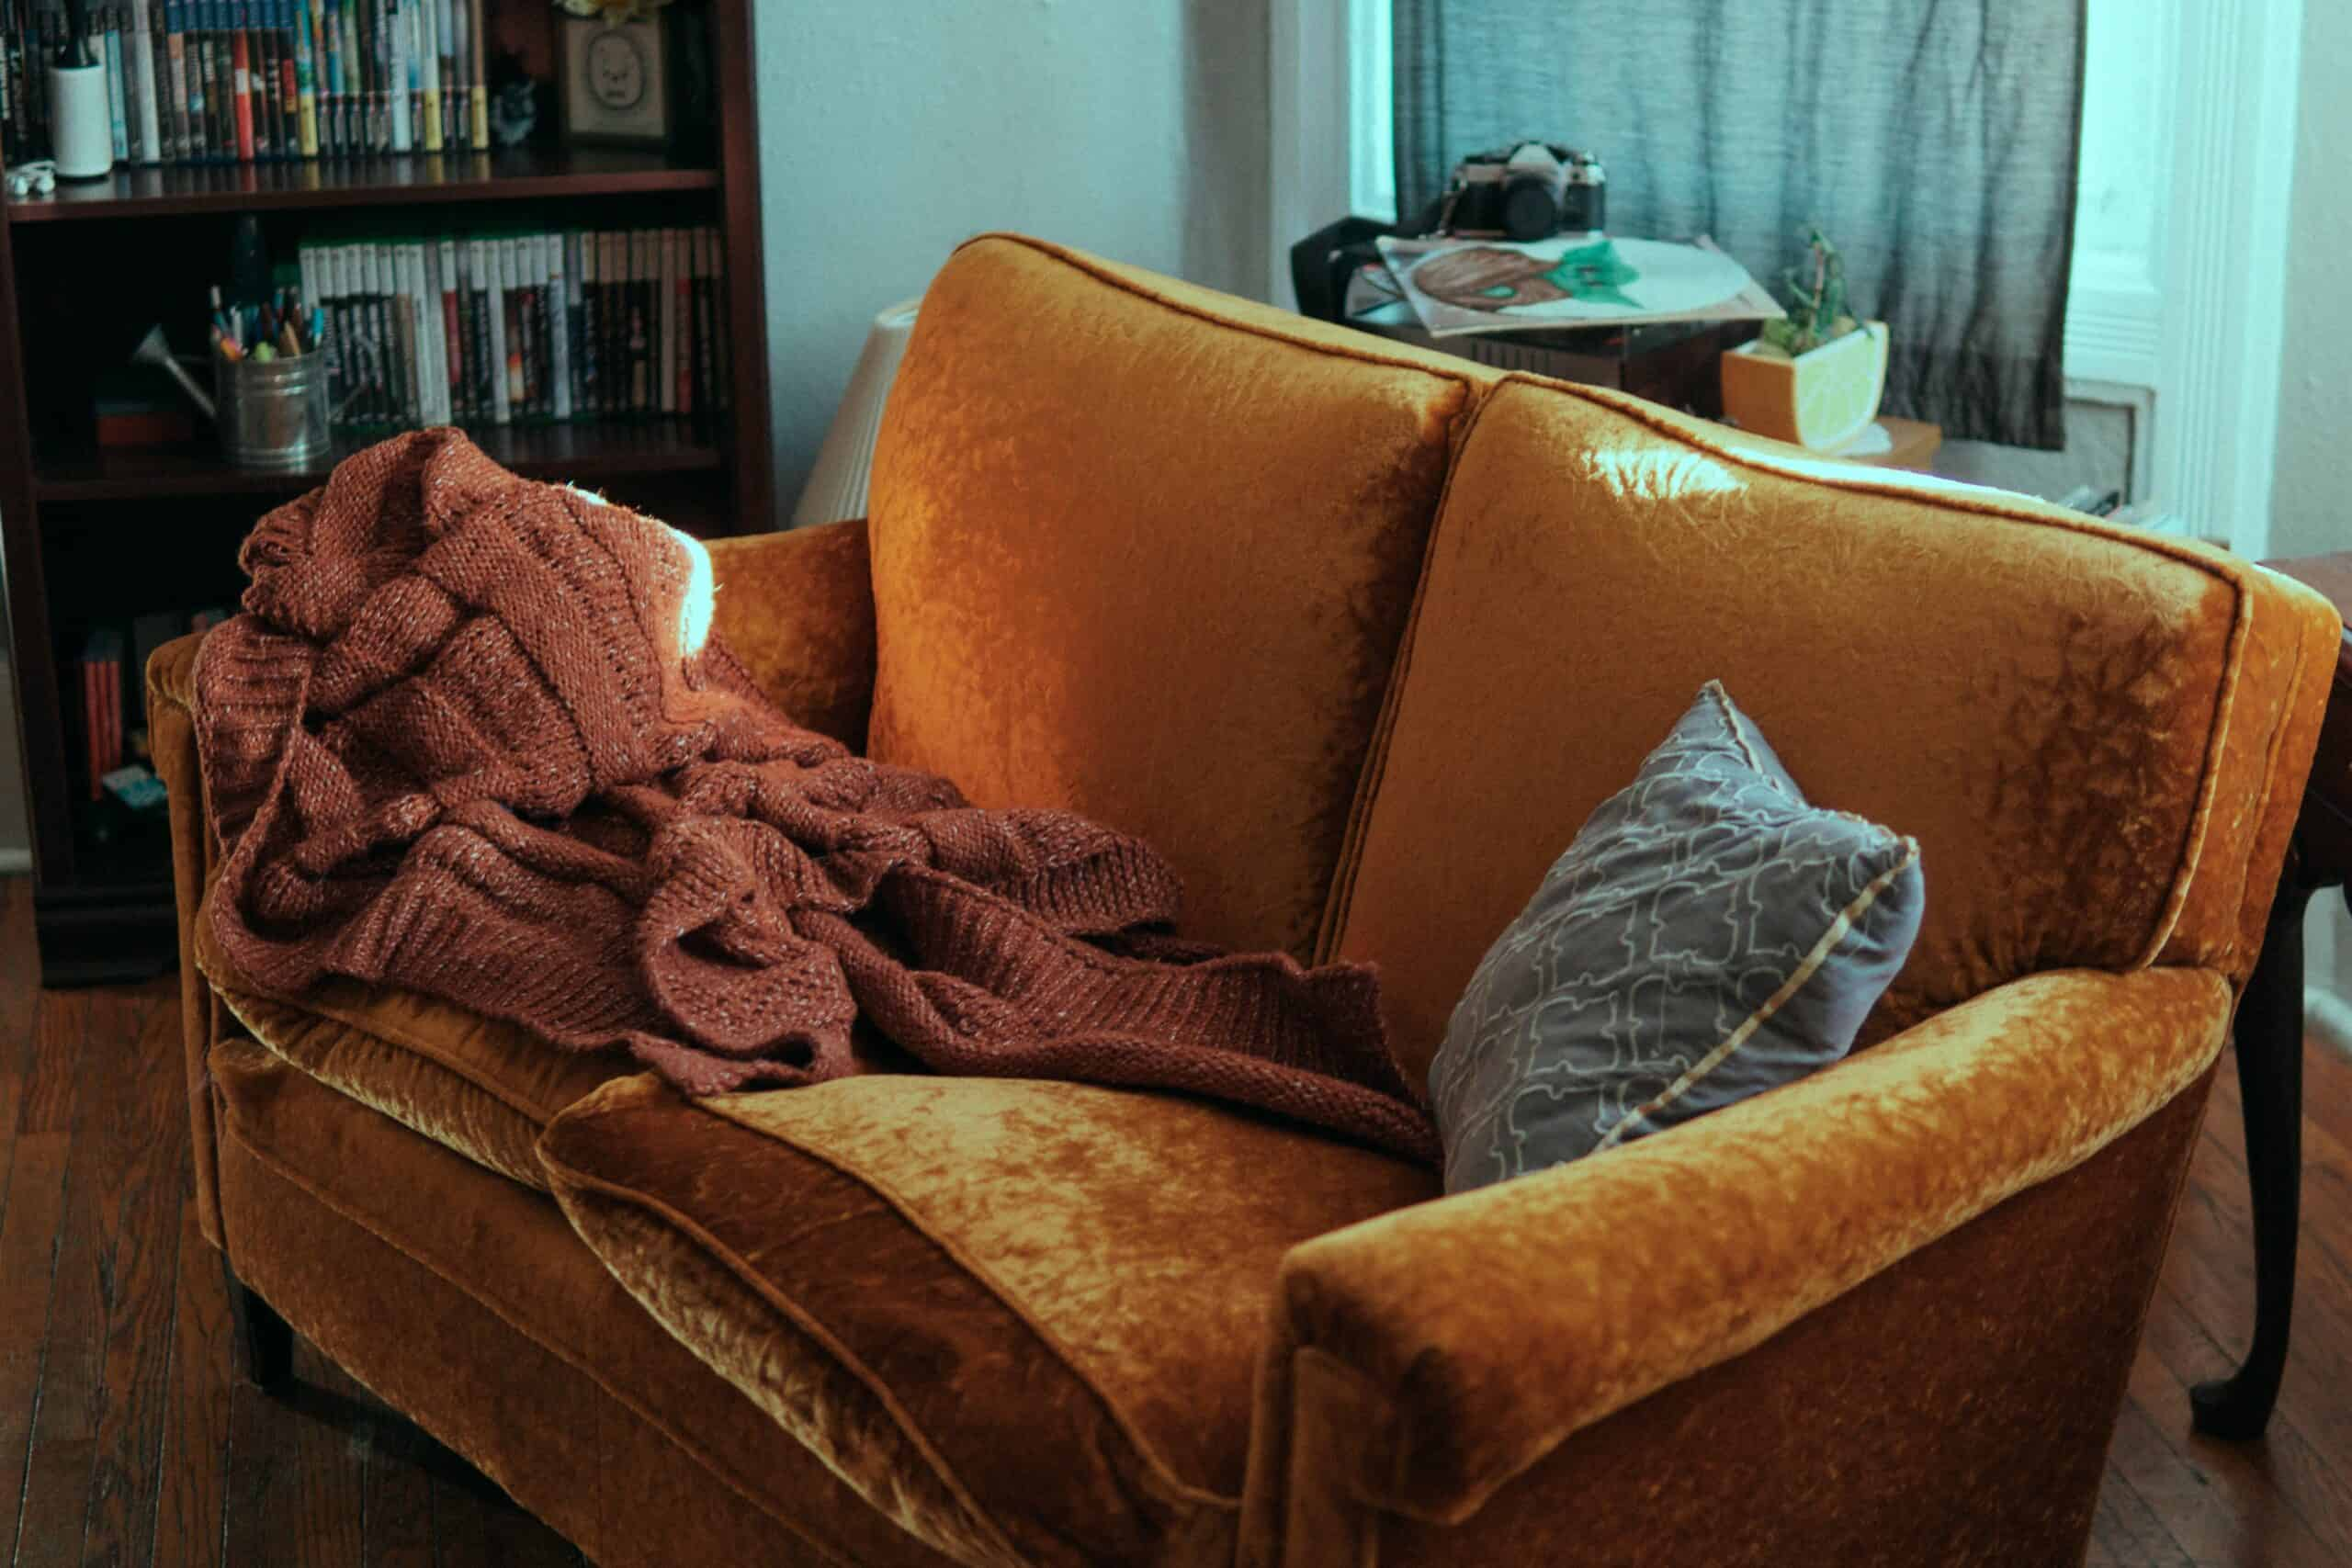 Couchsitting, blanket and cushion on a brown couch